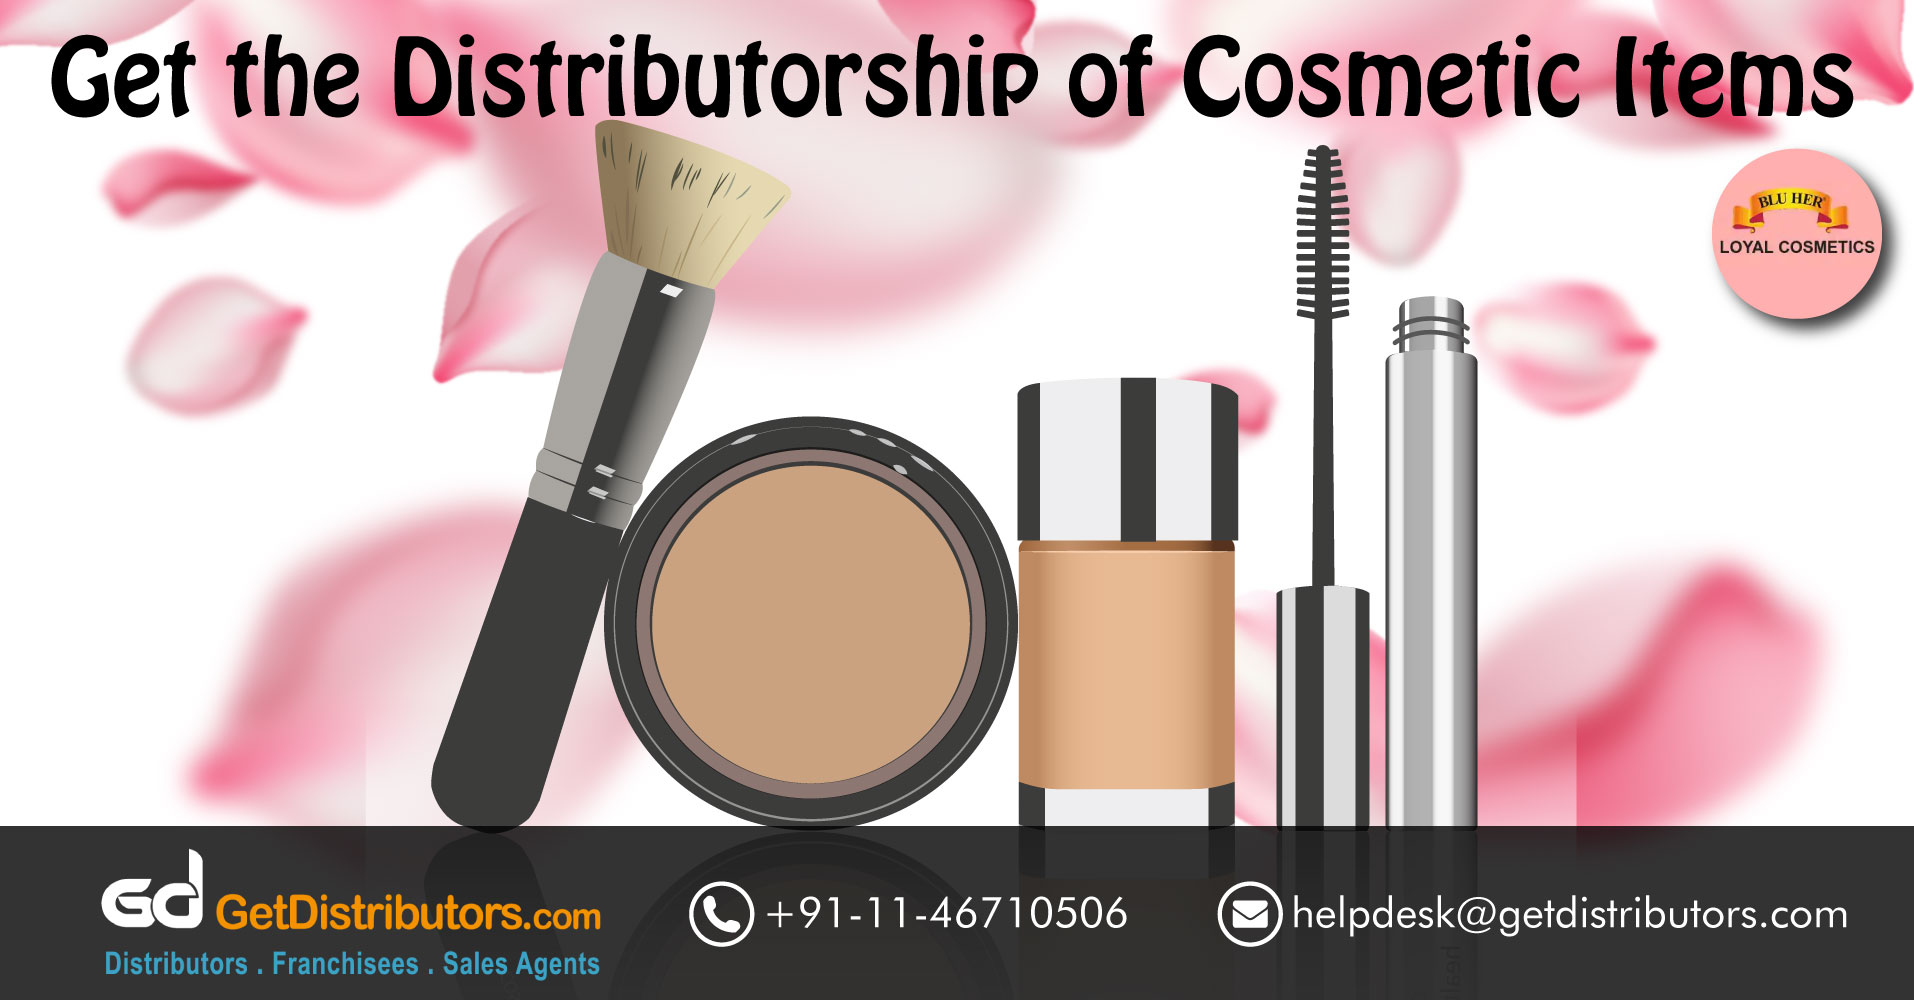 Loyal Cosmetics Is Offering Cosmetics And Personal Care Products Distributorship